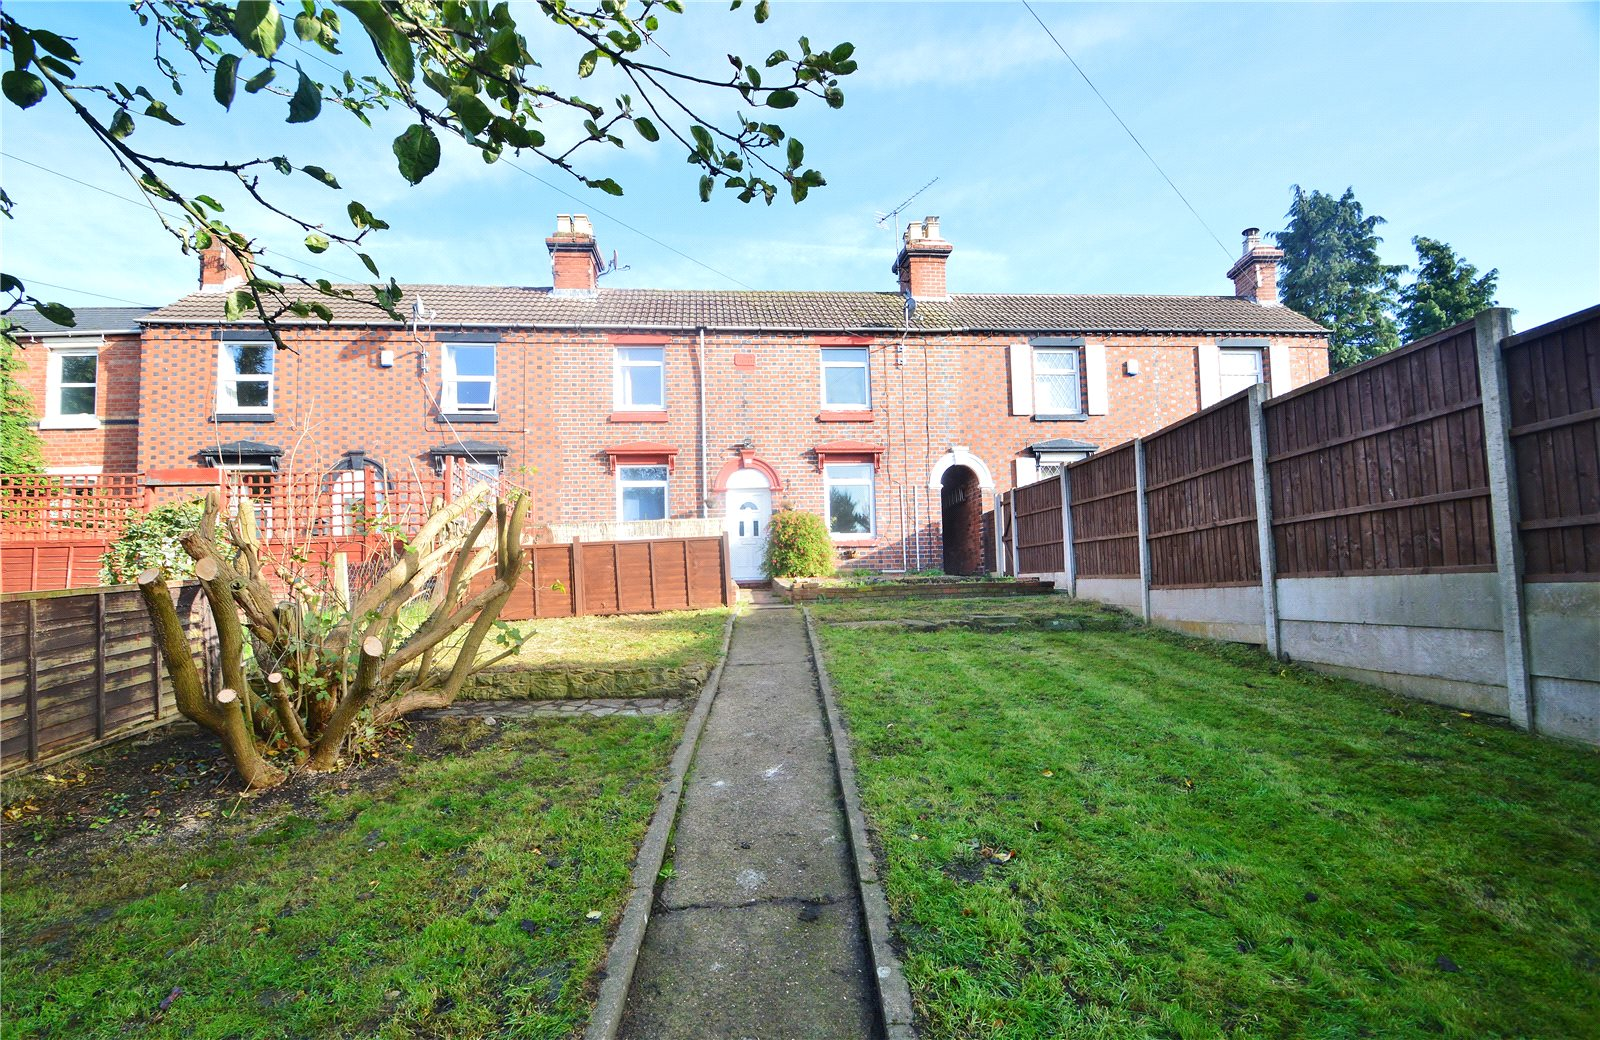 2 Bedrooms Terraced House for sale in 16 Anchorfields, Kidderminster, DY10